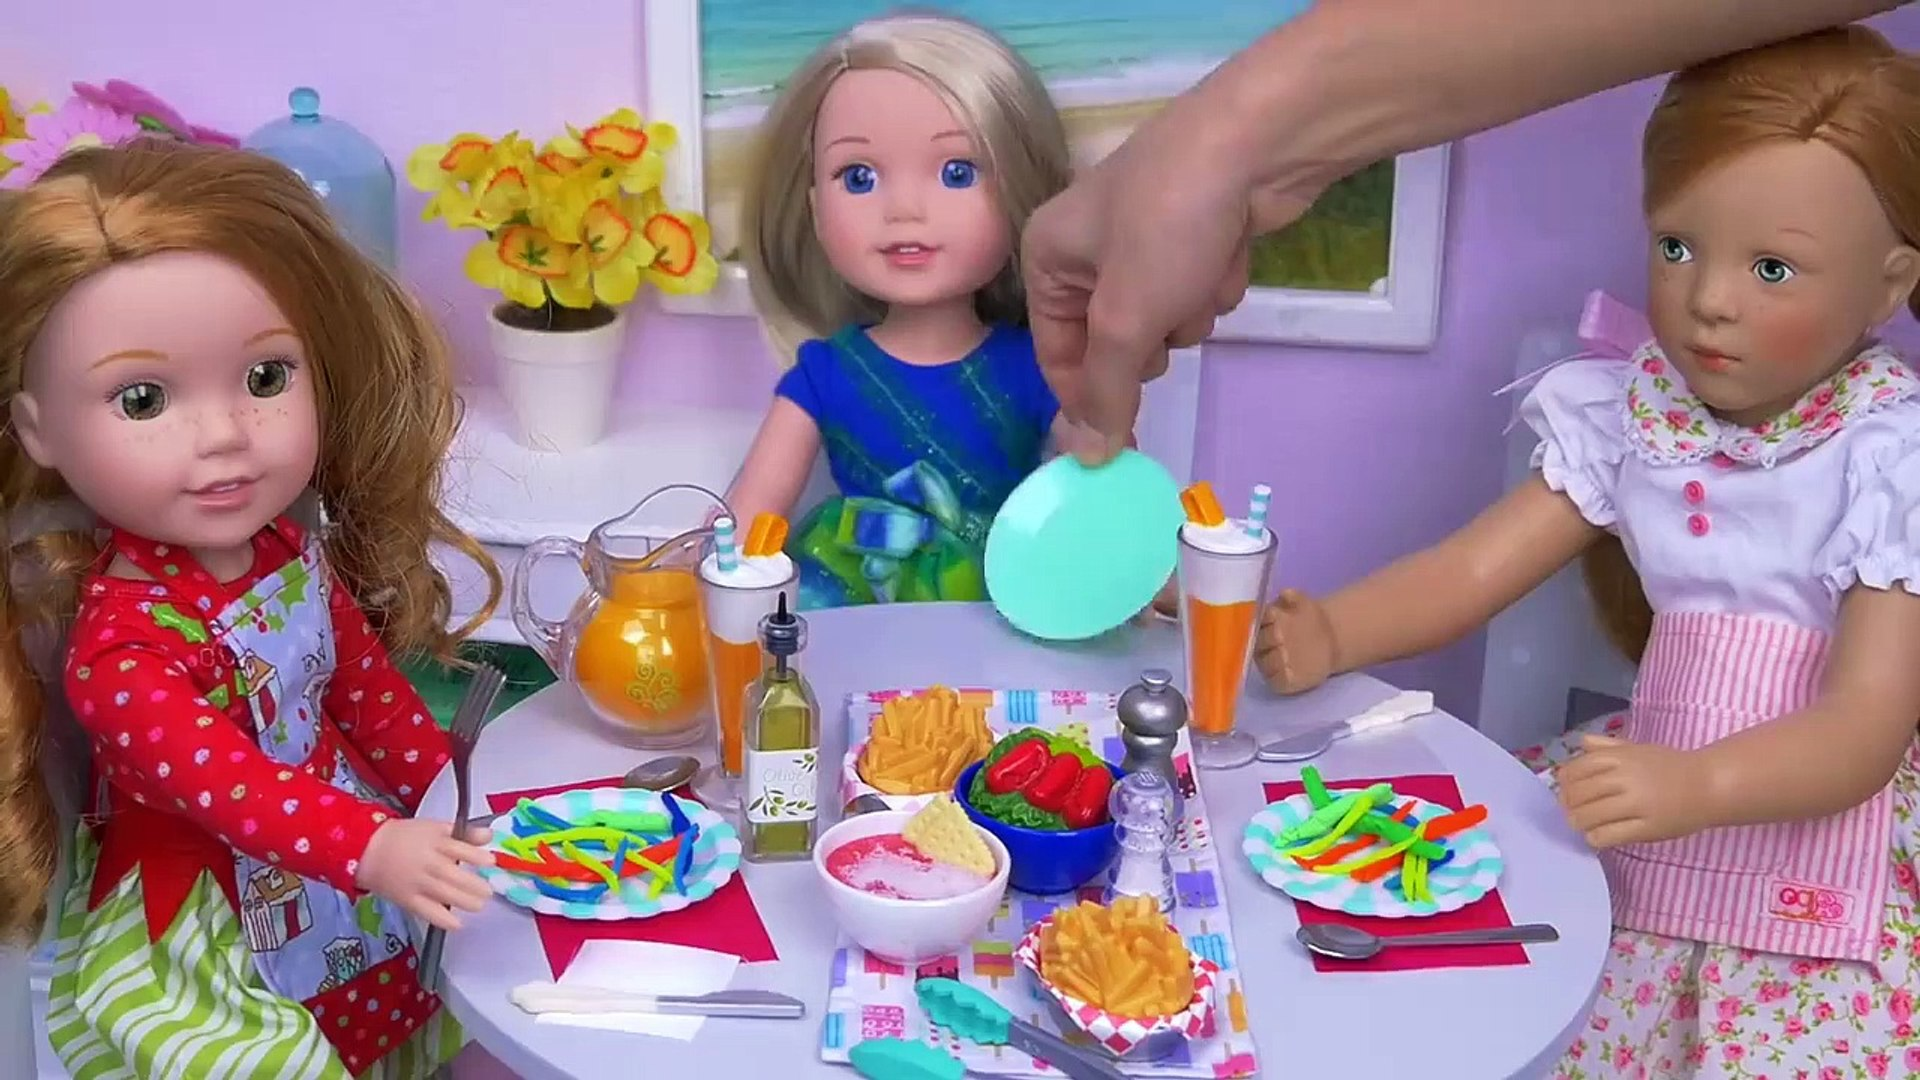 Baby Doll Cooking Play Doh Pasta In Doll Kitchen Toys Play Video Dailymotion